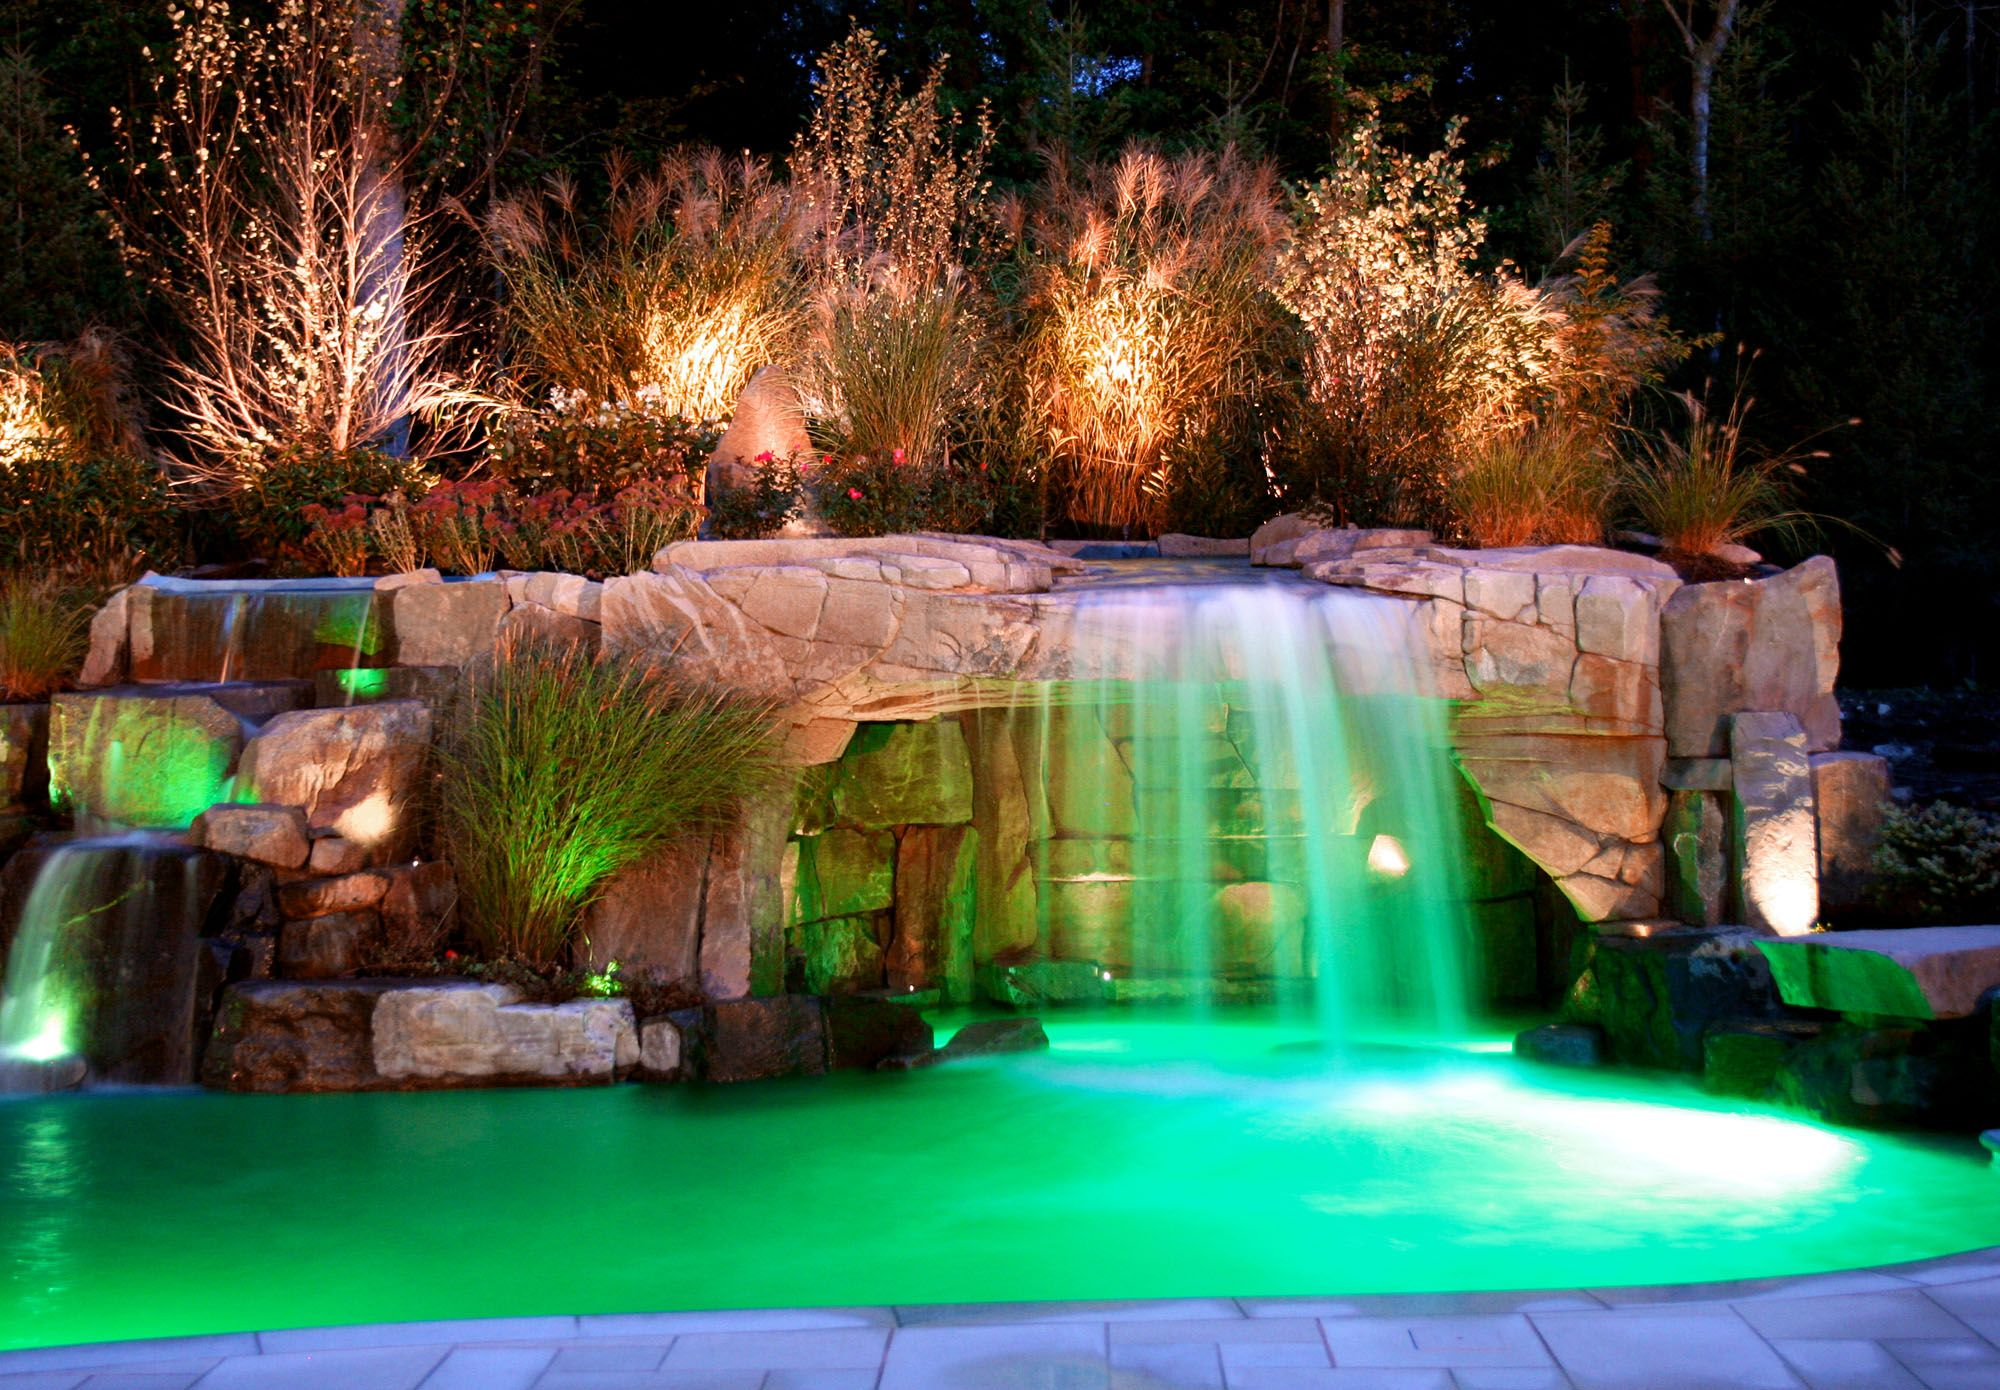 23 awesome in ground pools you have to see to believe - Swimming Pools With Grottos